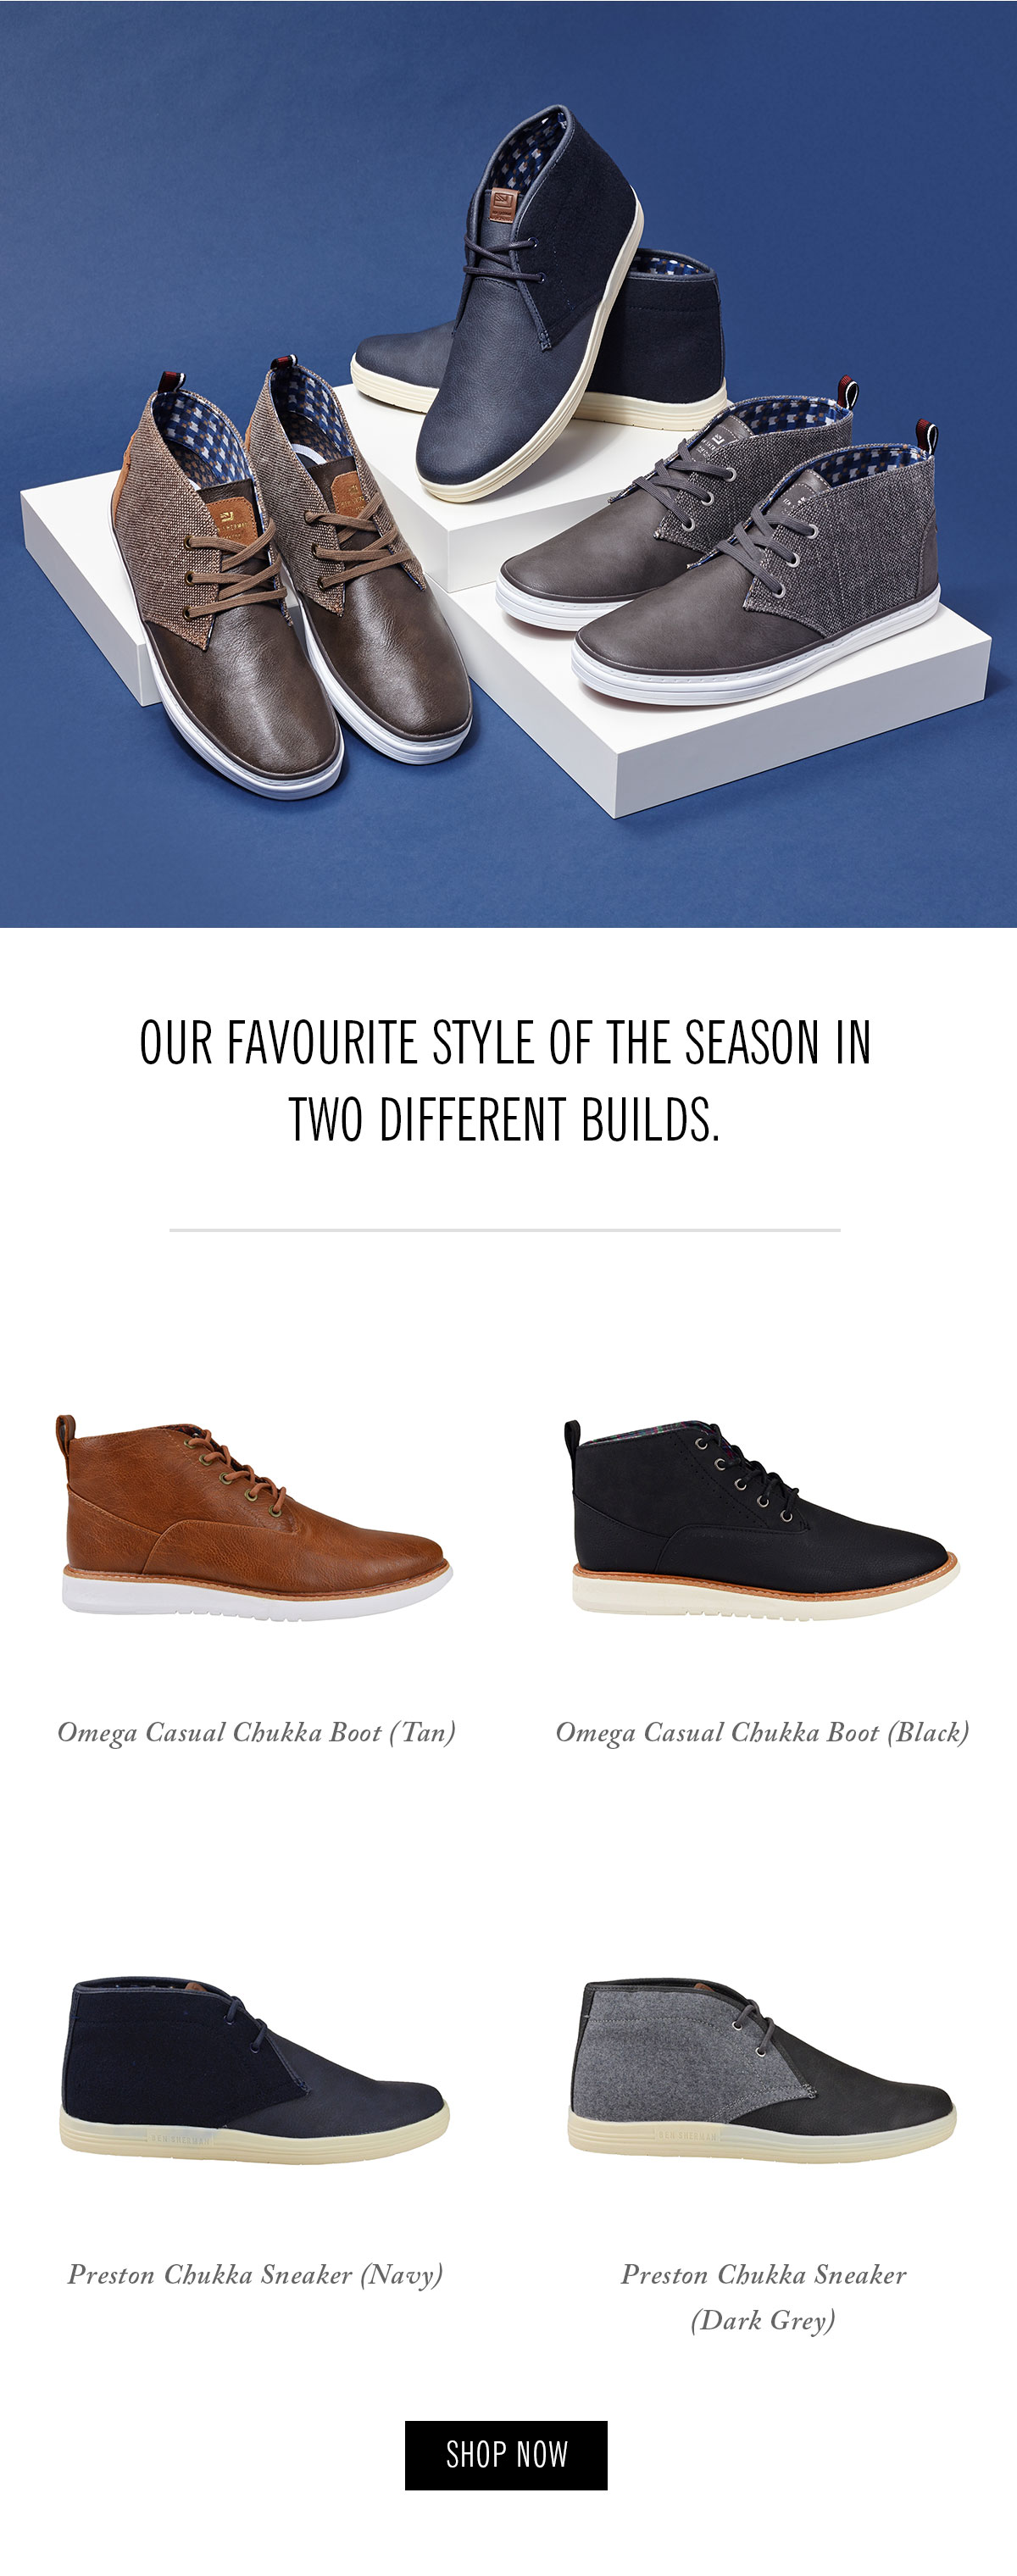 Chukka boots & sneakers | Out favourite style of the season in two different builds